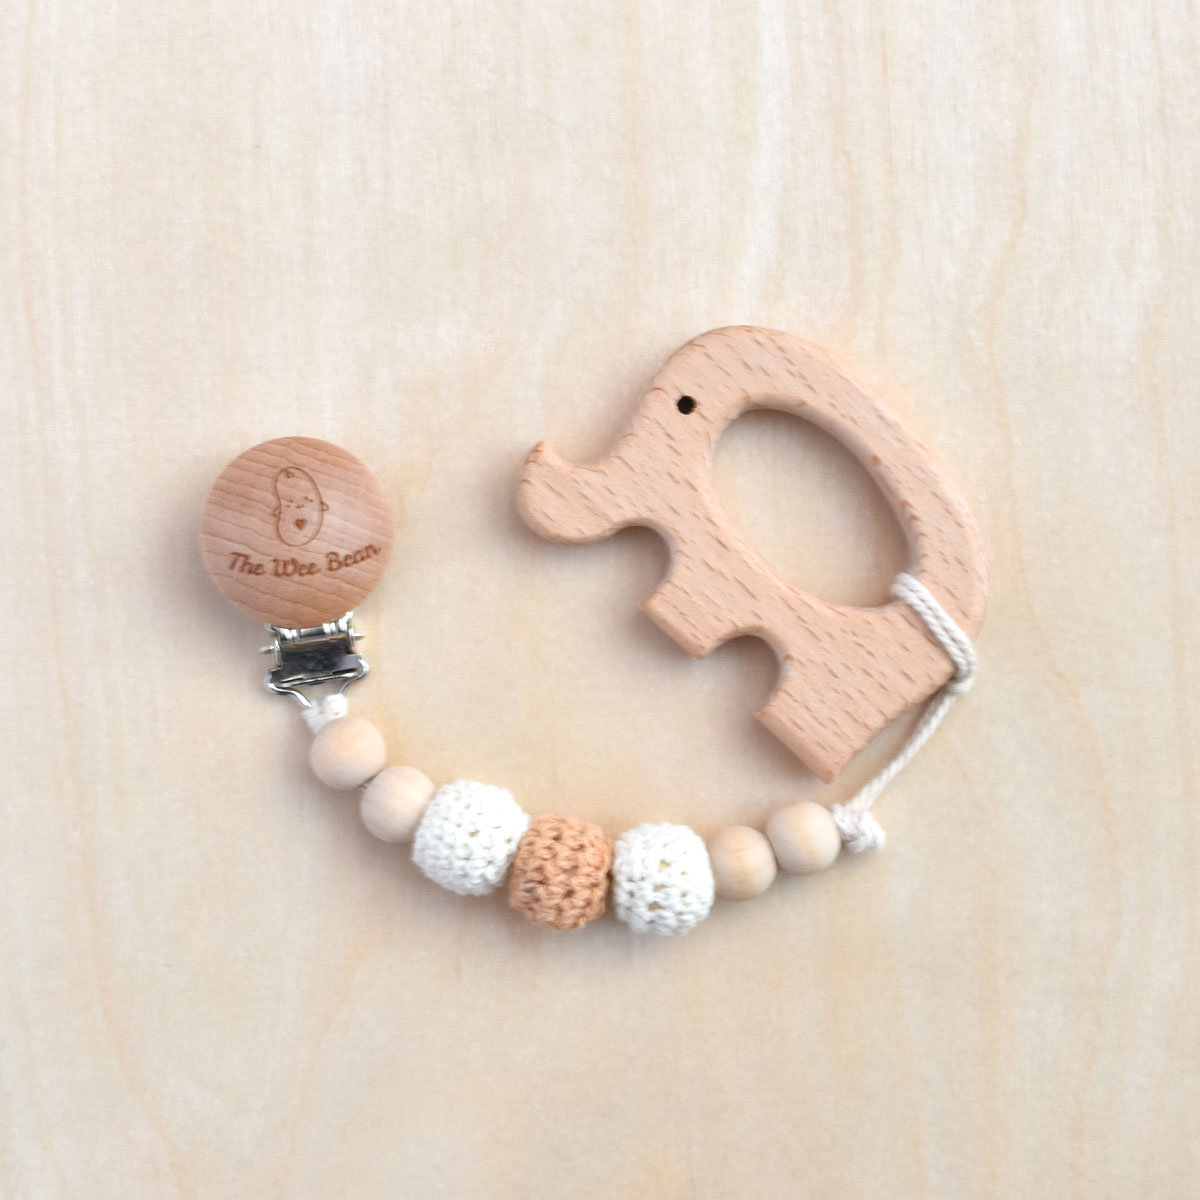 Elephant Organic Wood Teether + Pacifier Clip Set (Neutral Brown Color)